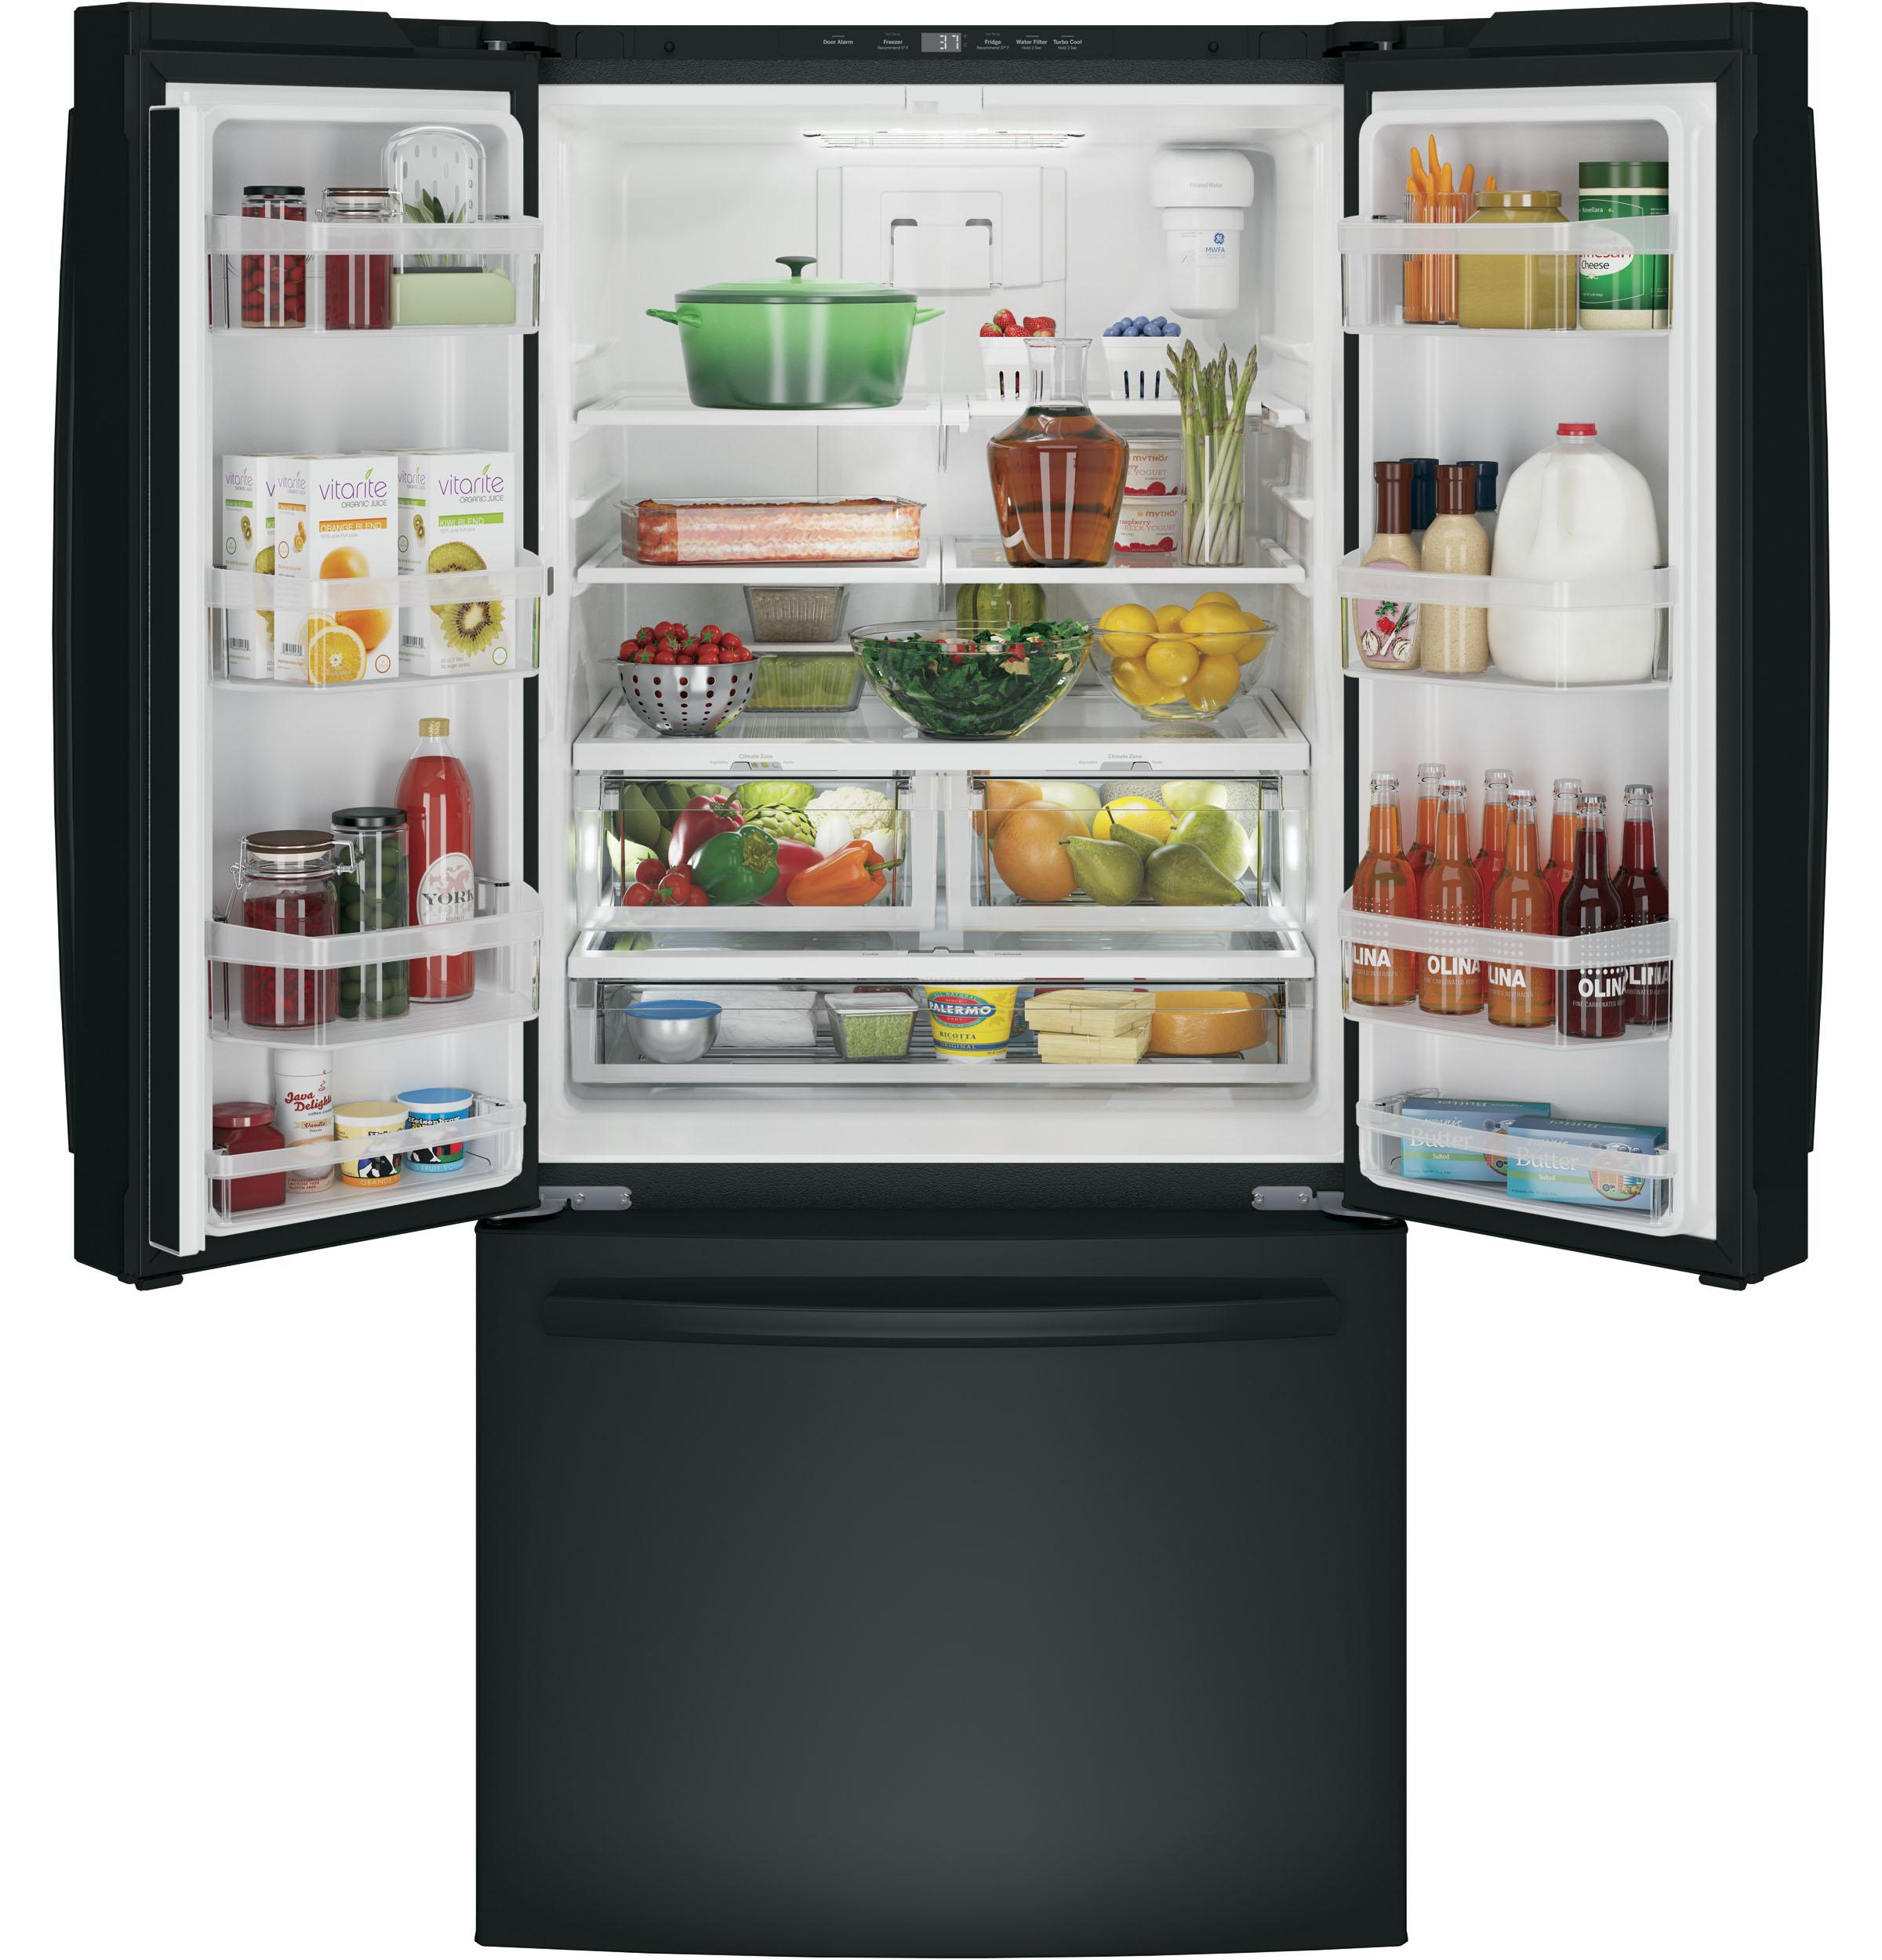 GE(R) ENERGY STAR(R) 24.8 Cu. Ft. French-Door Refrigerator